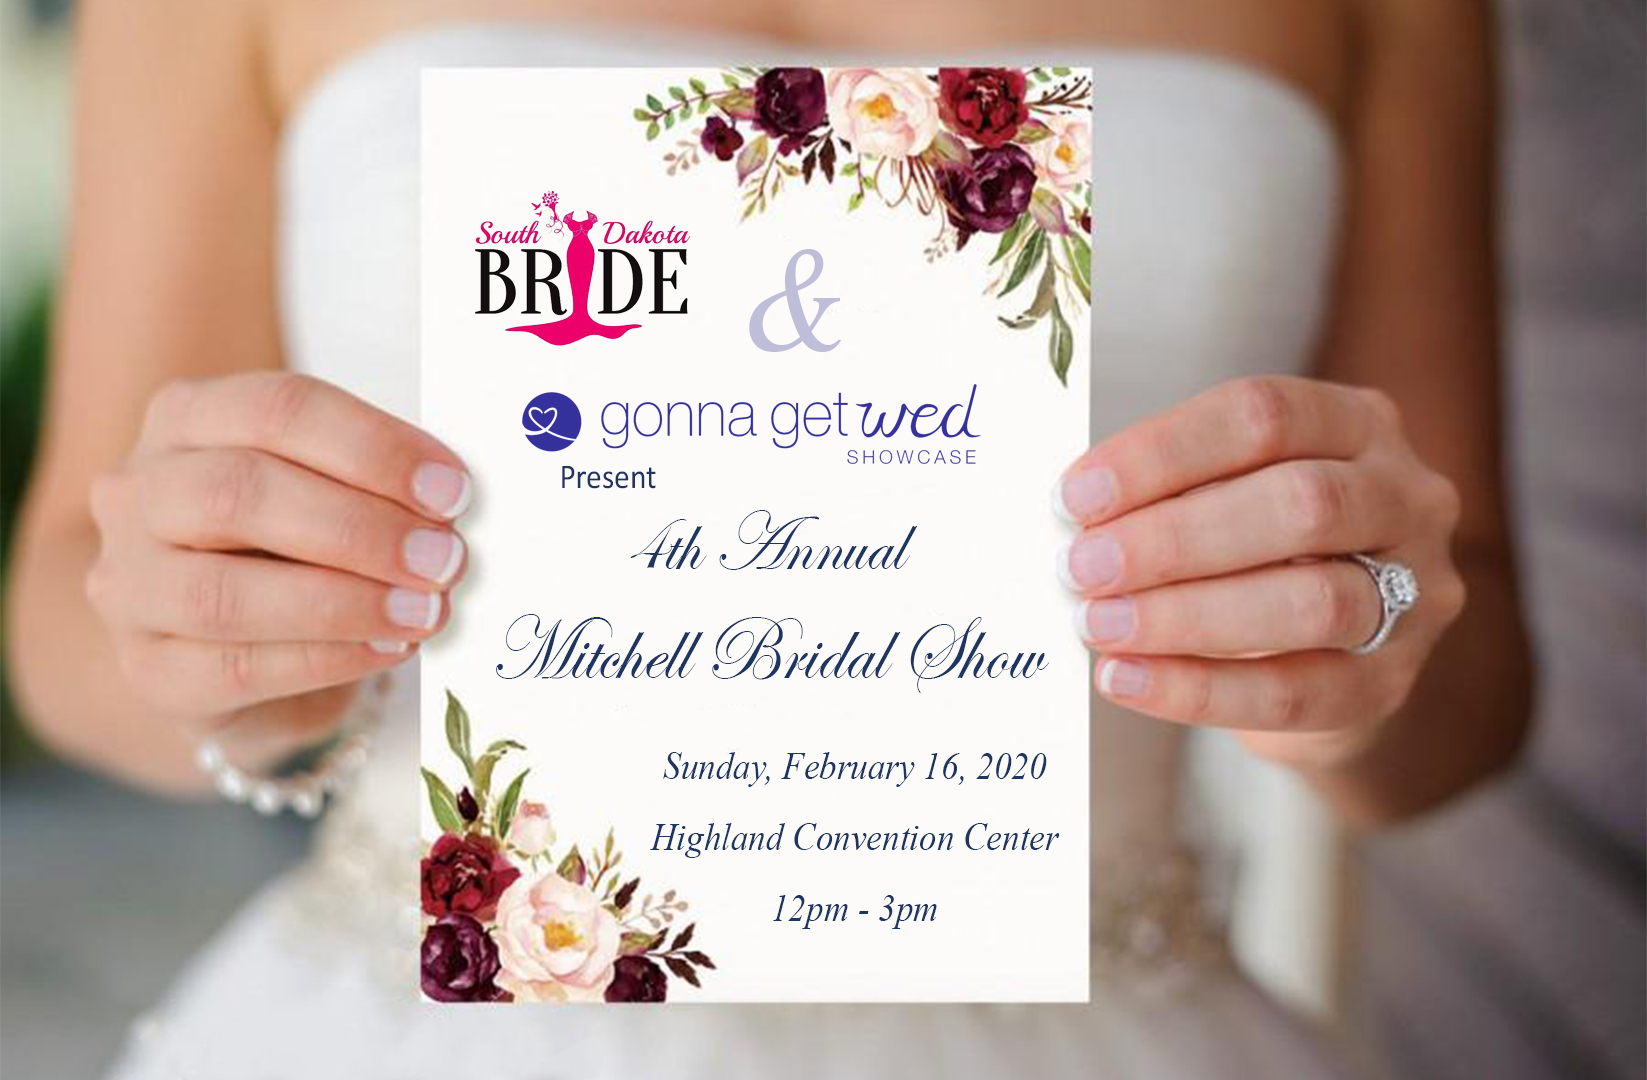 4th Annual Mitchell Bridal Show